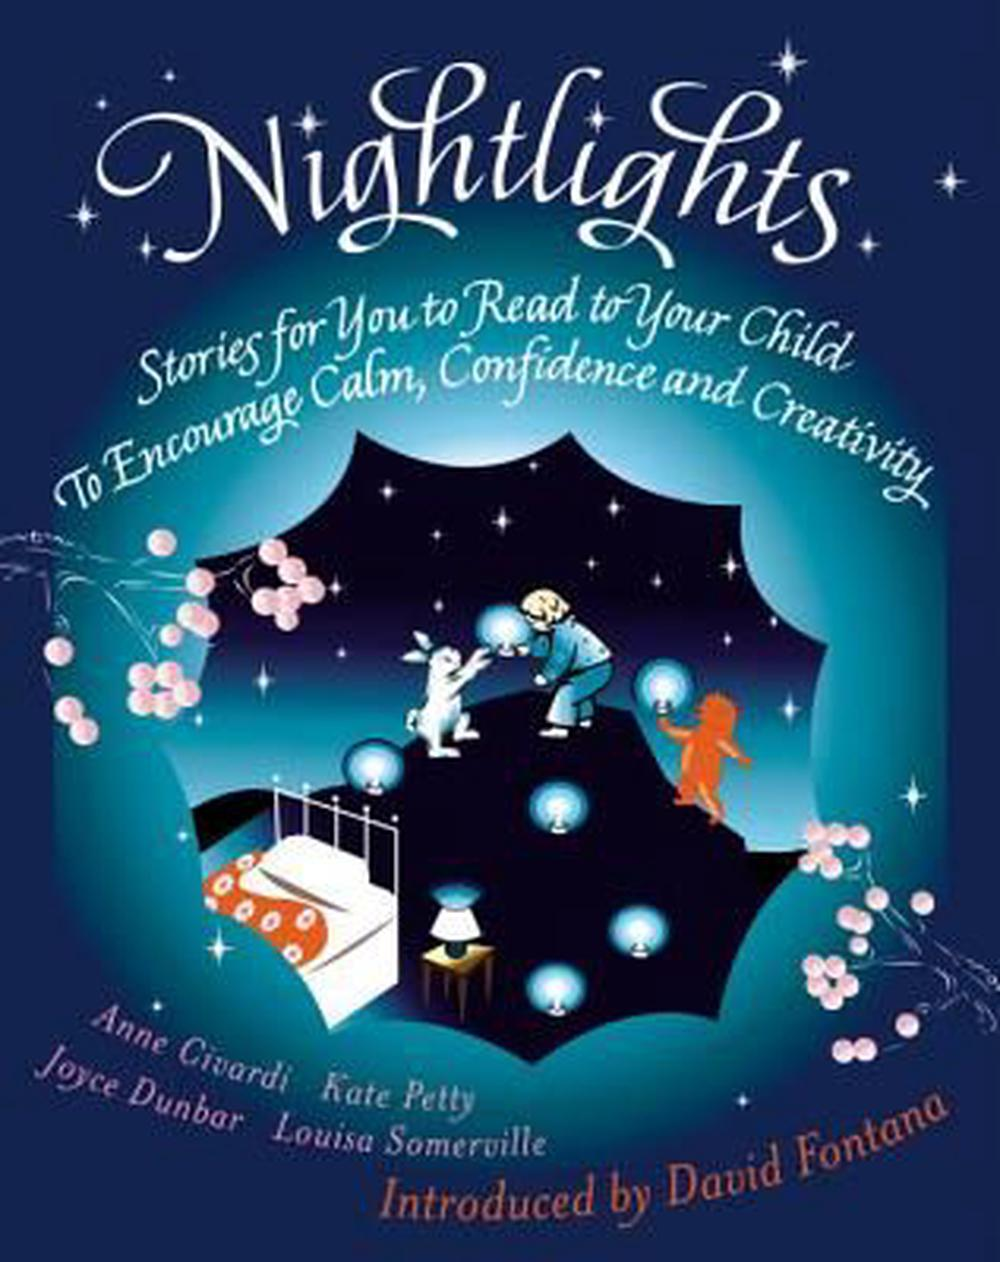 Nightlights- Stories to encourage Calm, Confidence and Creativity